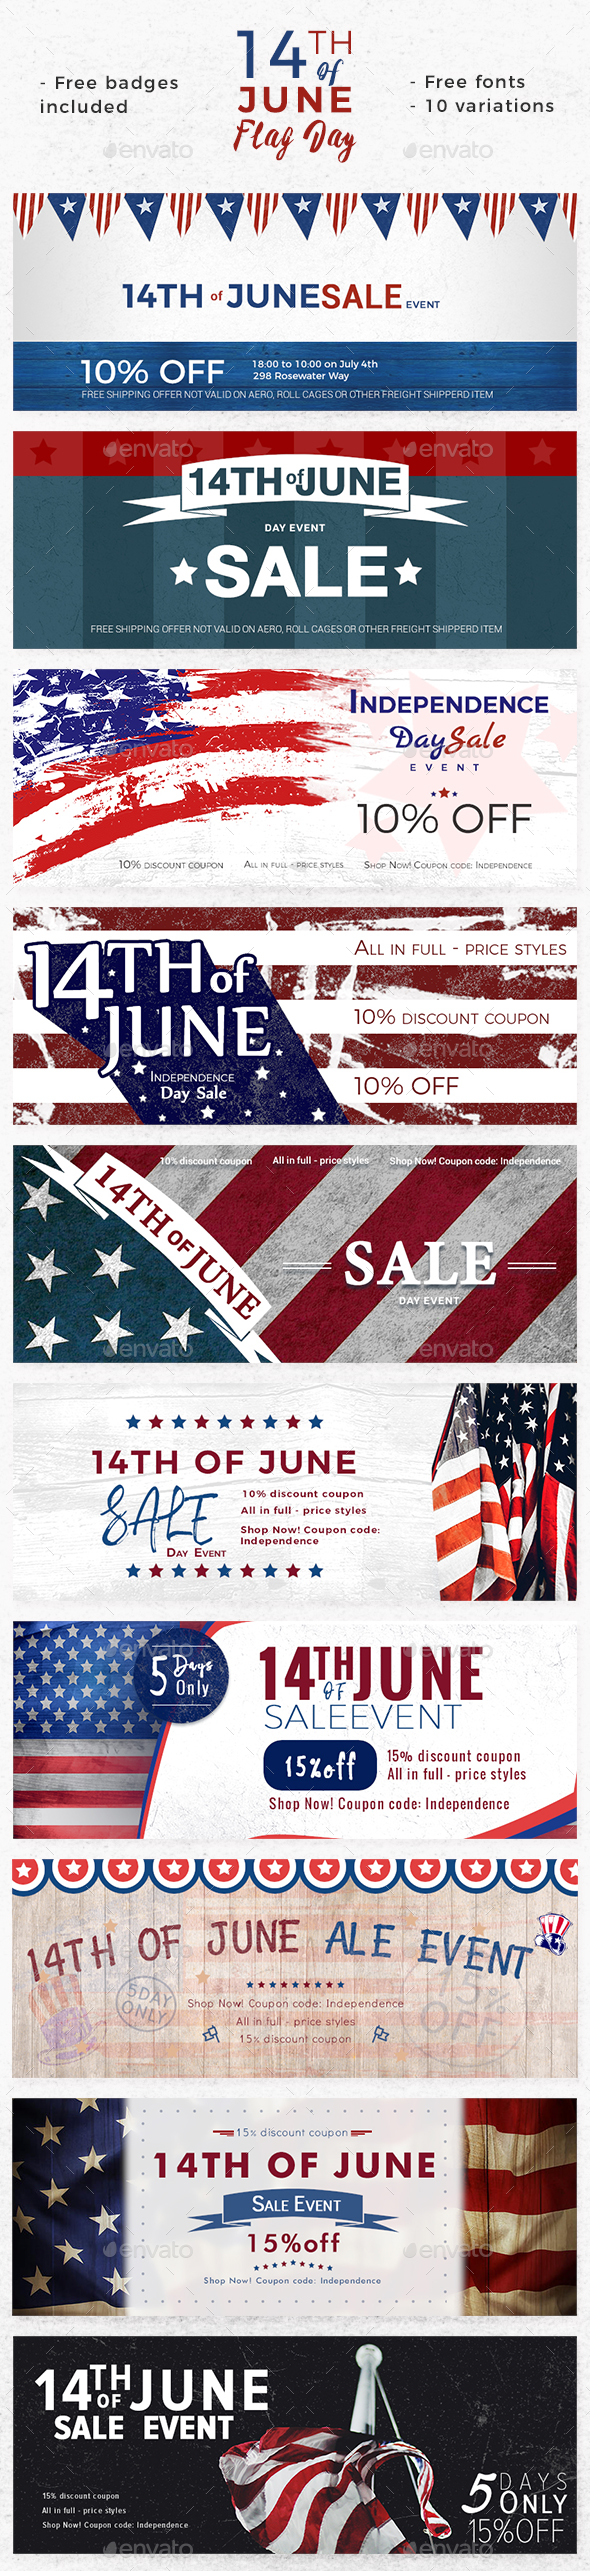 Promote 14th of June Flag Day - Banners - Banners & Ads Web Elements